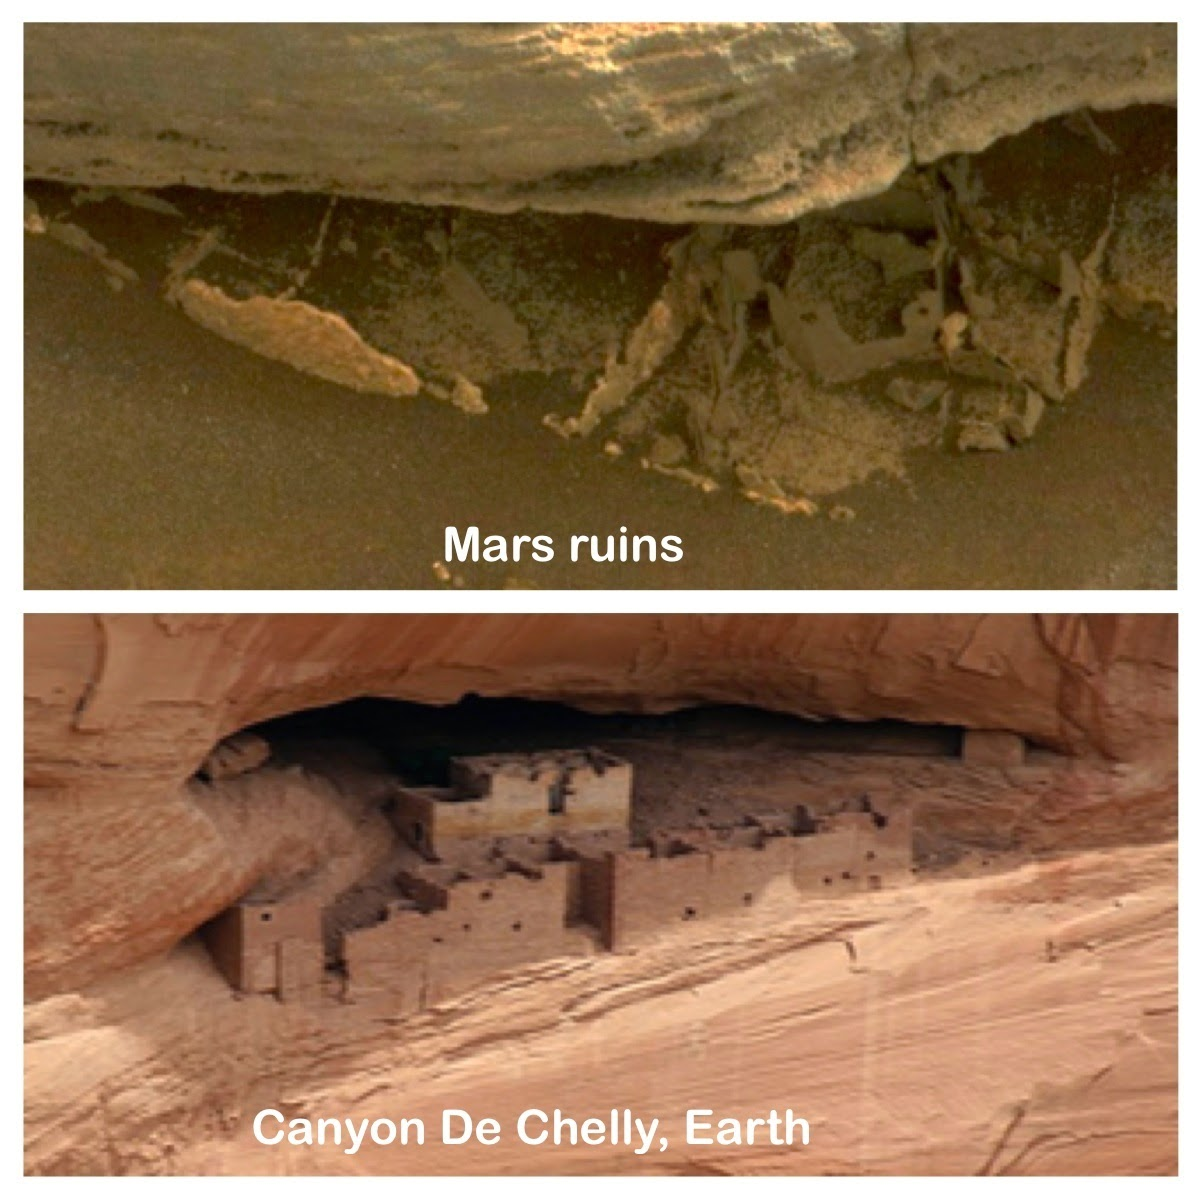 UFO SIGHTINGS DAILY: Ancient Ruins Of Walls, Mines And ...